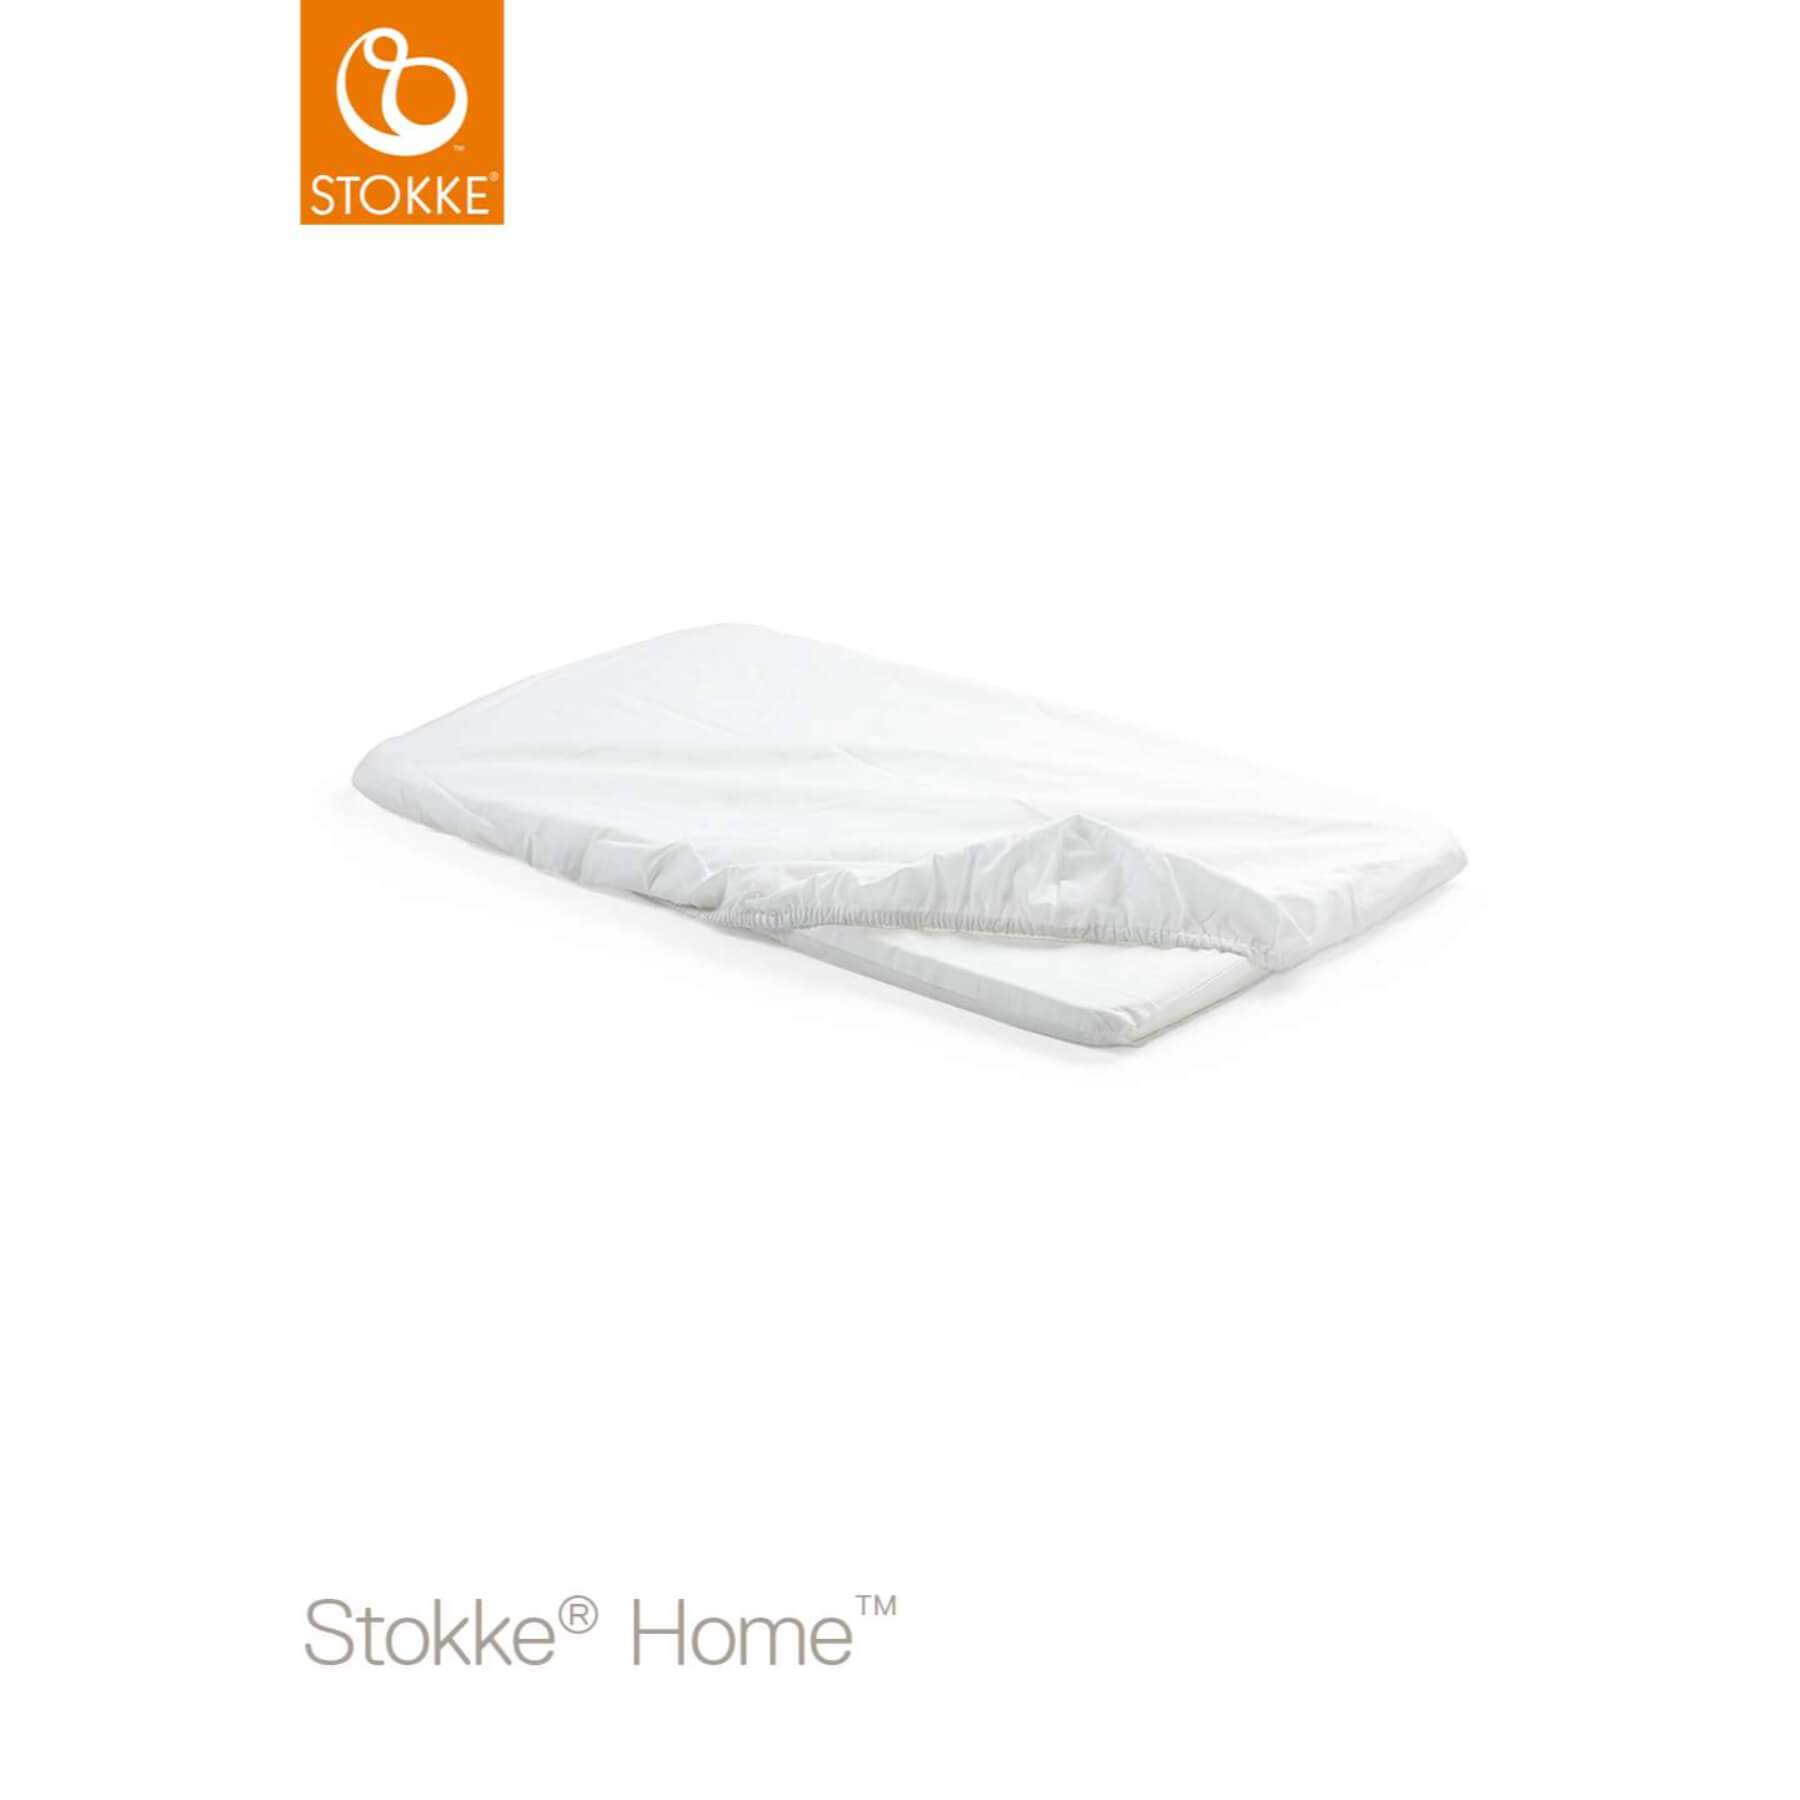 Stokke Home Cradle Fitted Sheets (2 pcs)